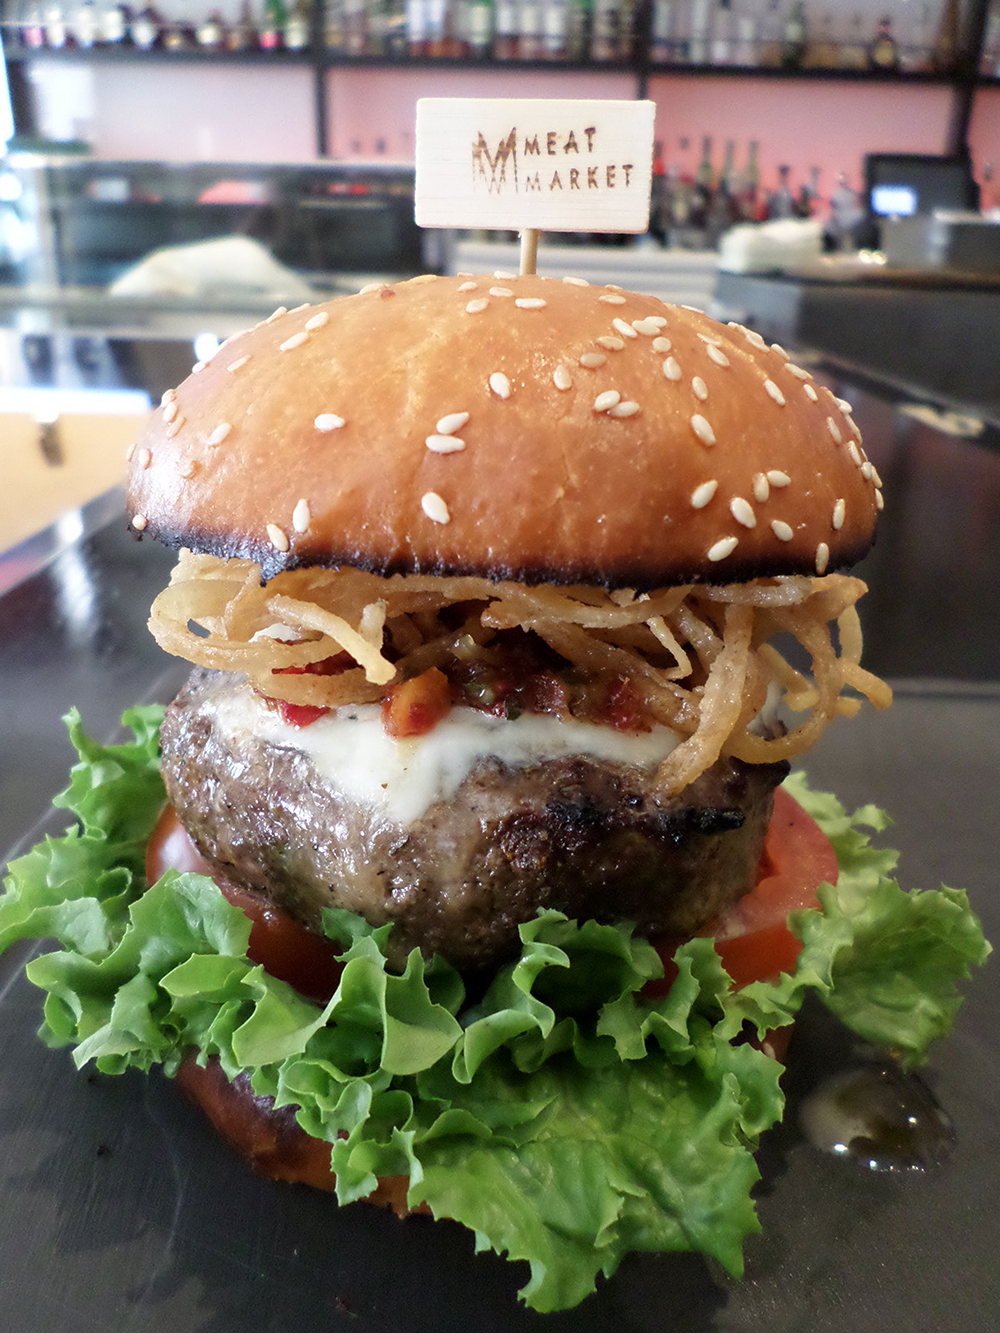 Meat Marker National Burger Month Burger in Miami